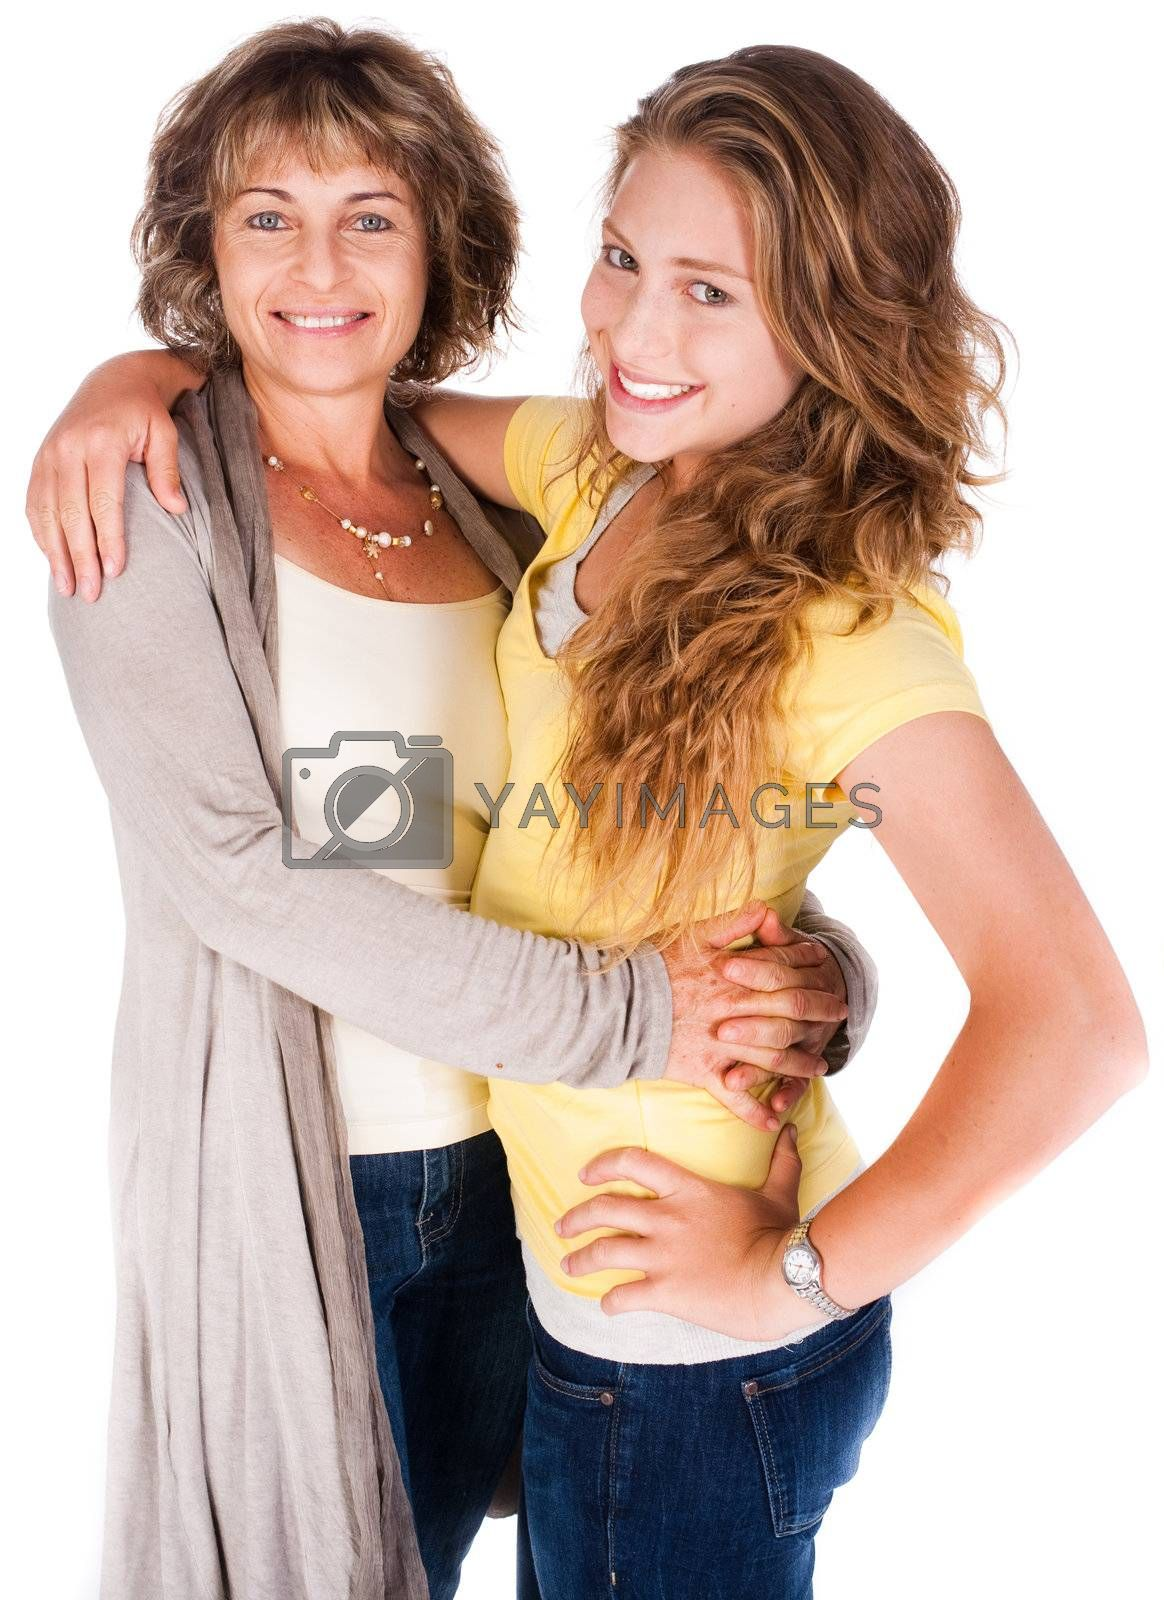 Mother and daughter embracing each other by get4net